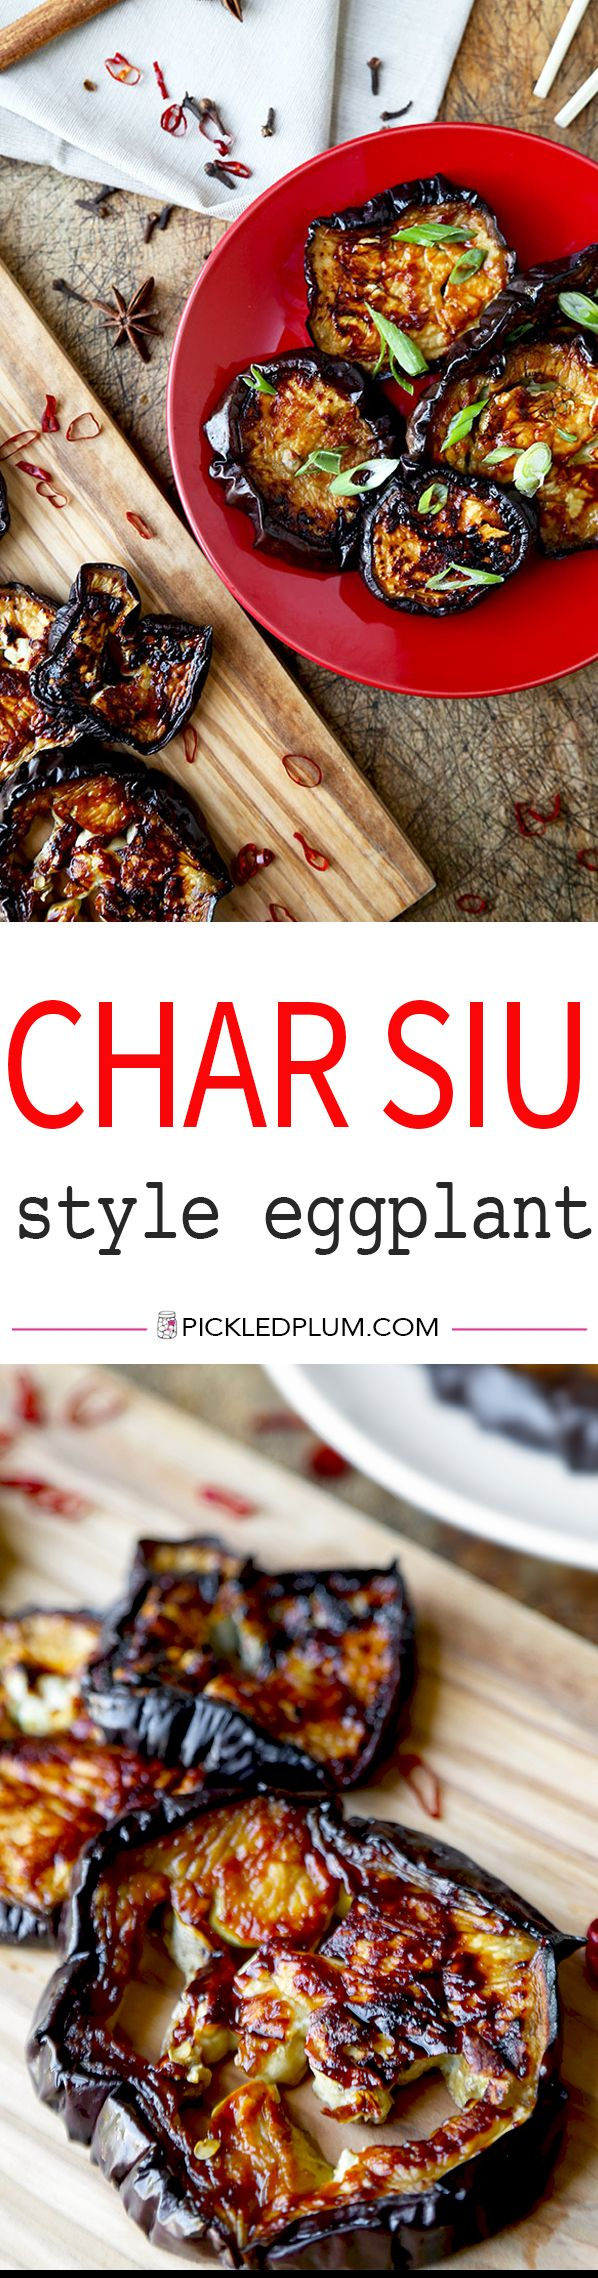 Char Siu Style Roasted Eggplant - This roasted and caramelized Char Siu Style Eggplant Recipe has the deep sweet and savory flavors of Chinese roasted pork, but just happens to be super healthy! Recipe, vegetarian, side, appetizer, Chinese, healthy | pickledplum.com